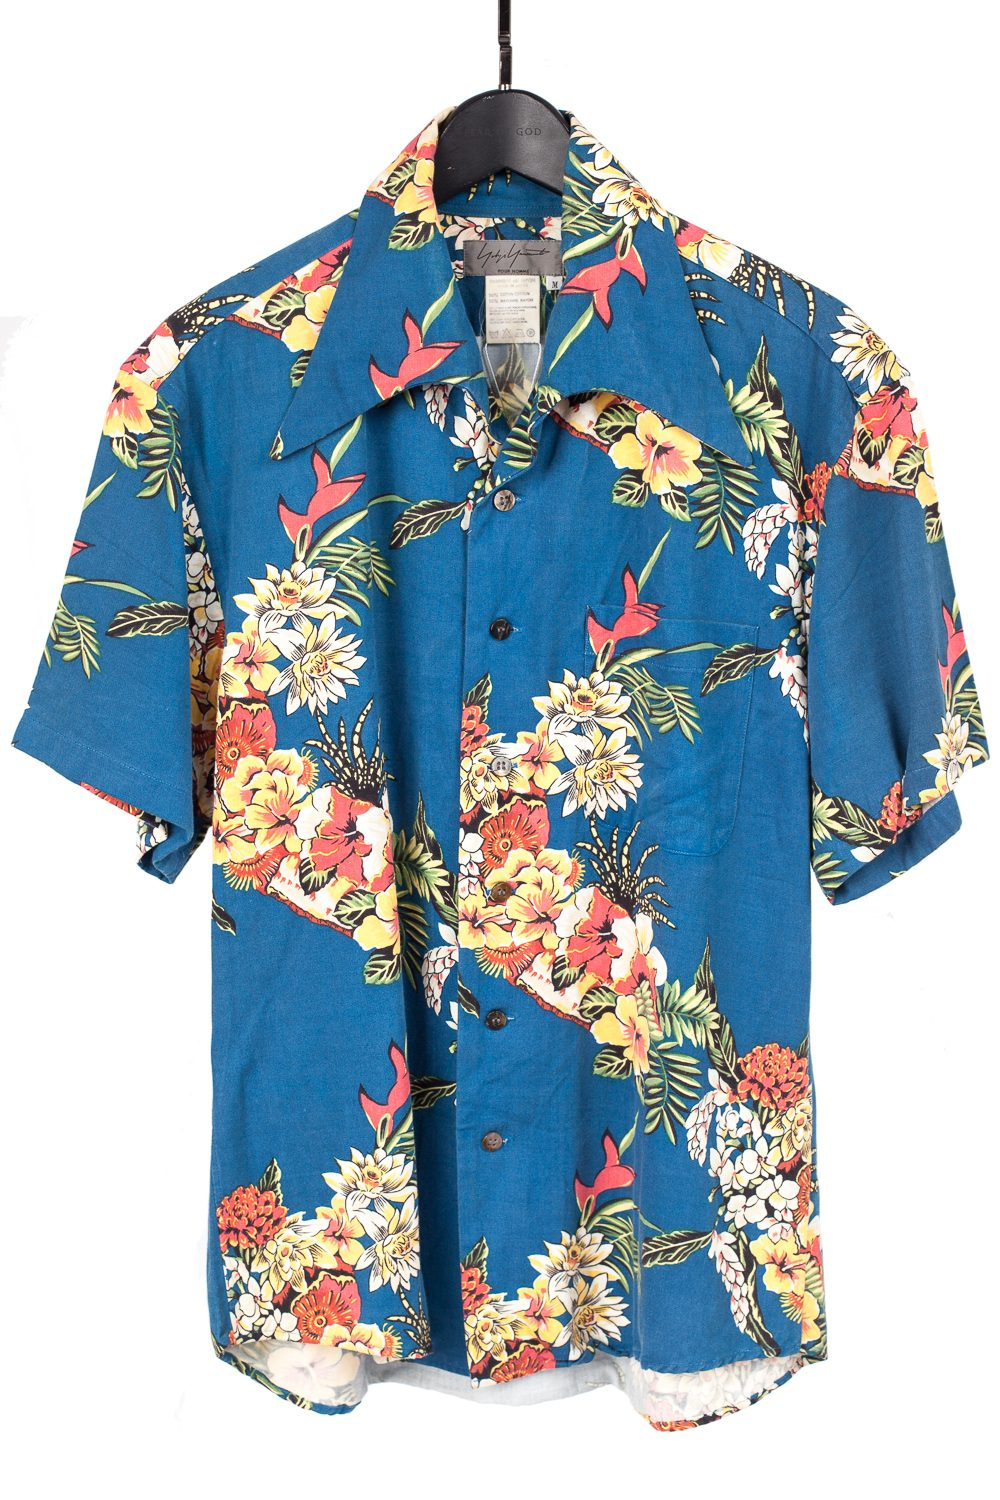 SS97 Floral Rayon/Cotton Hawaiin